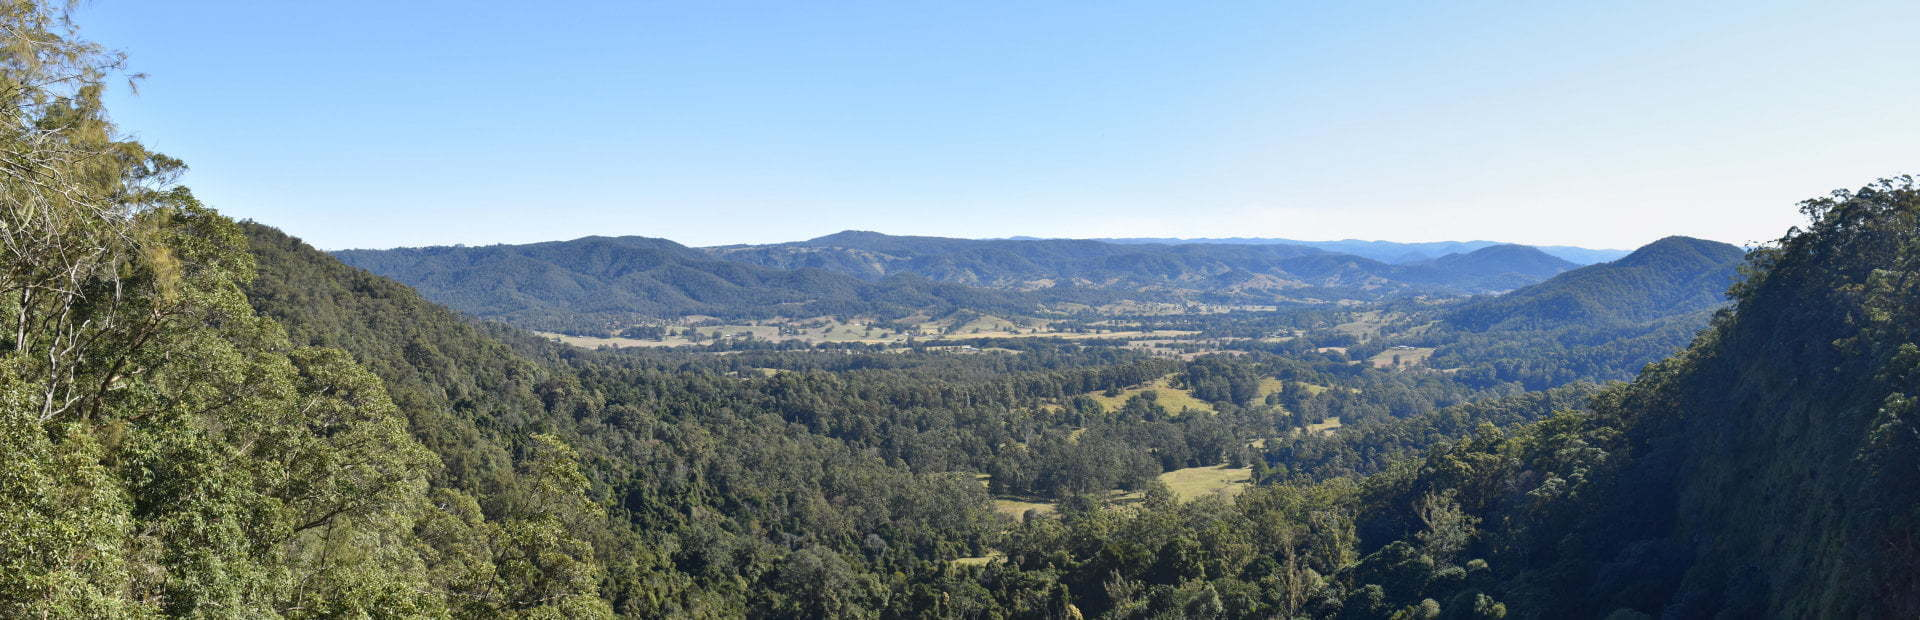 Panorama view from the viewing platform at Mapleton Falls National Park